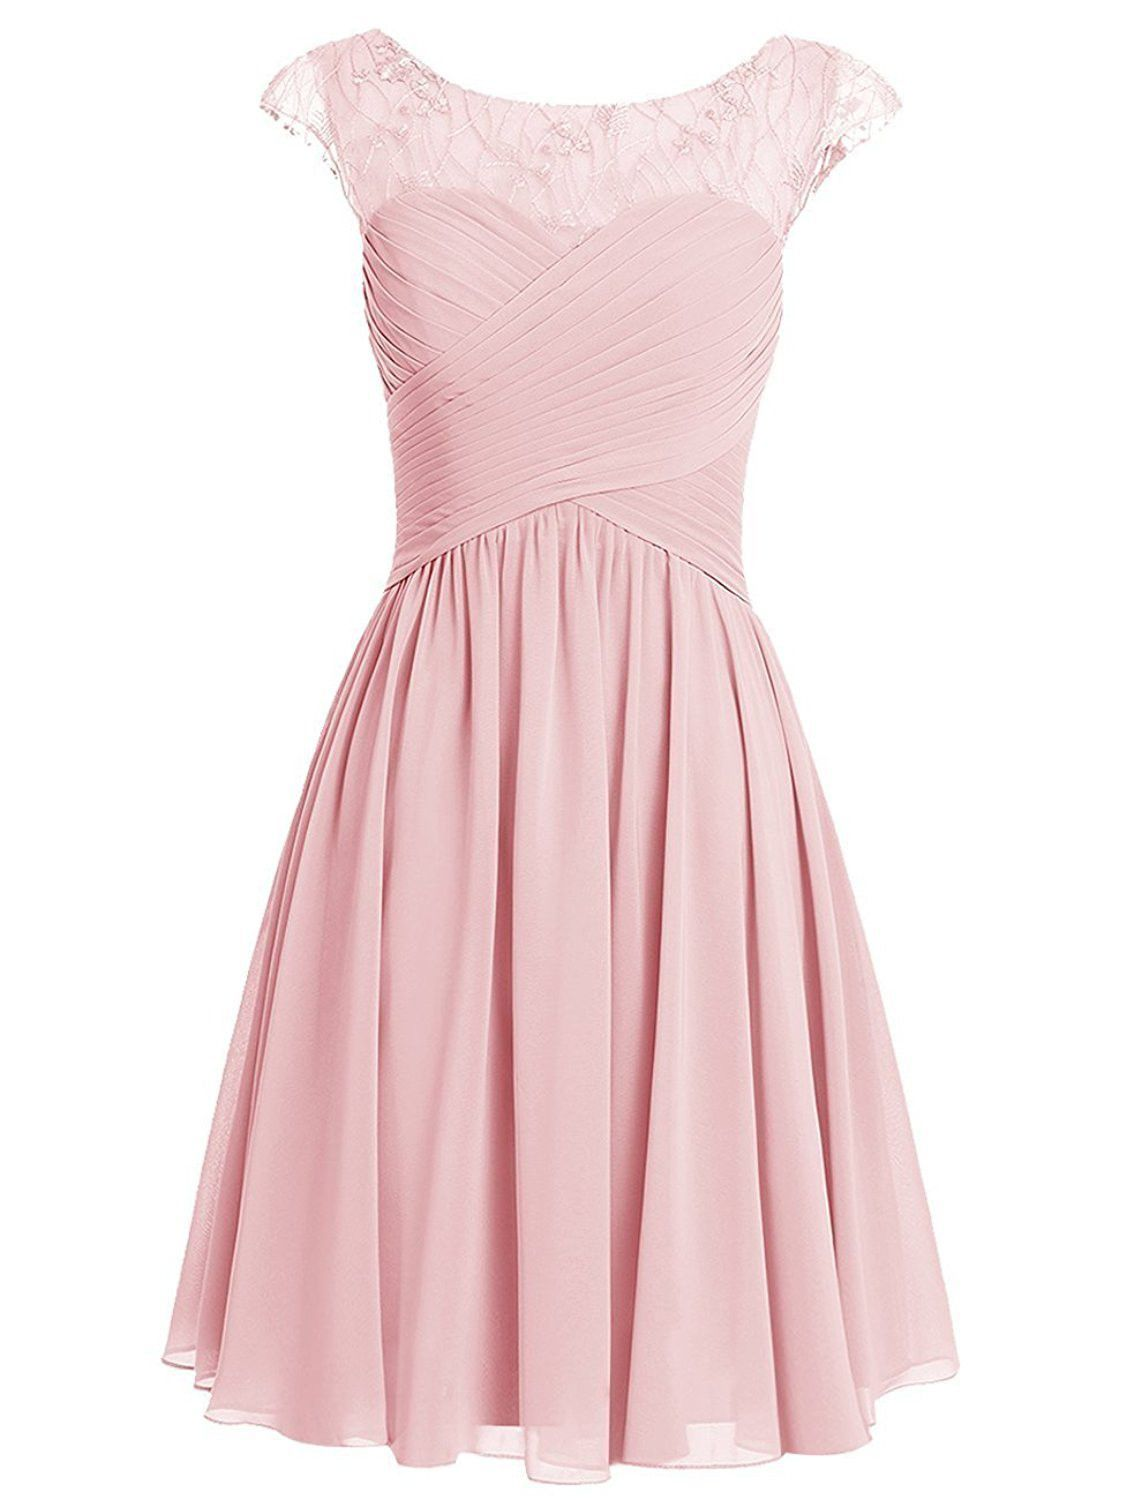 Pink Homecoming Dress,Cute Homecoming Dress,Short Prom Dress,Juniors ...